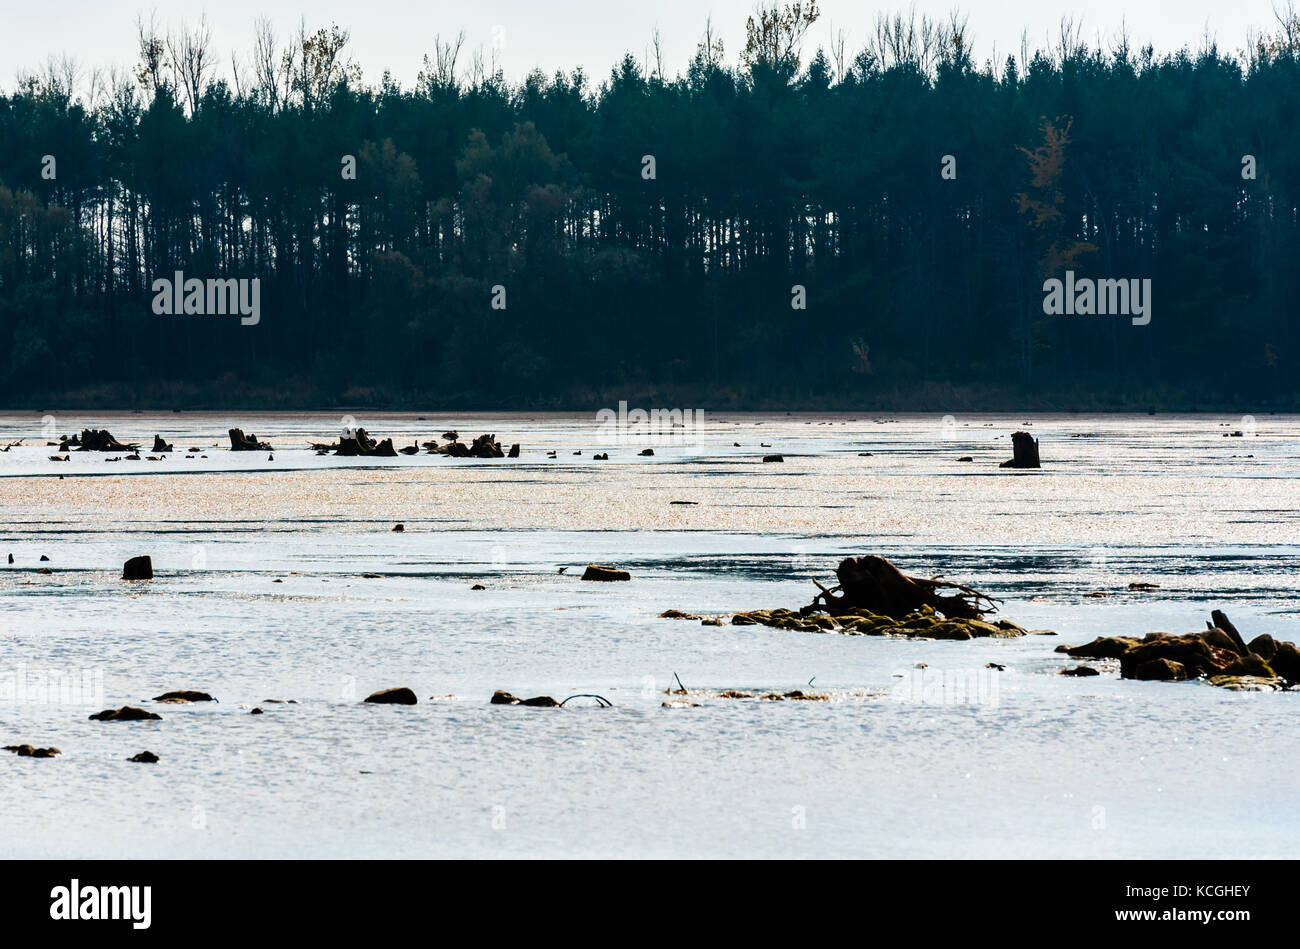 Remains of dark decaying tree stumps contrasted against large muddy pond and dense forest in distance. Stock Photo